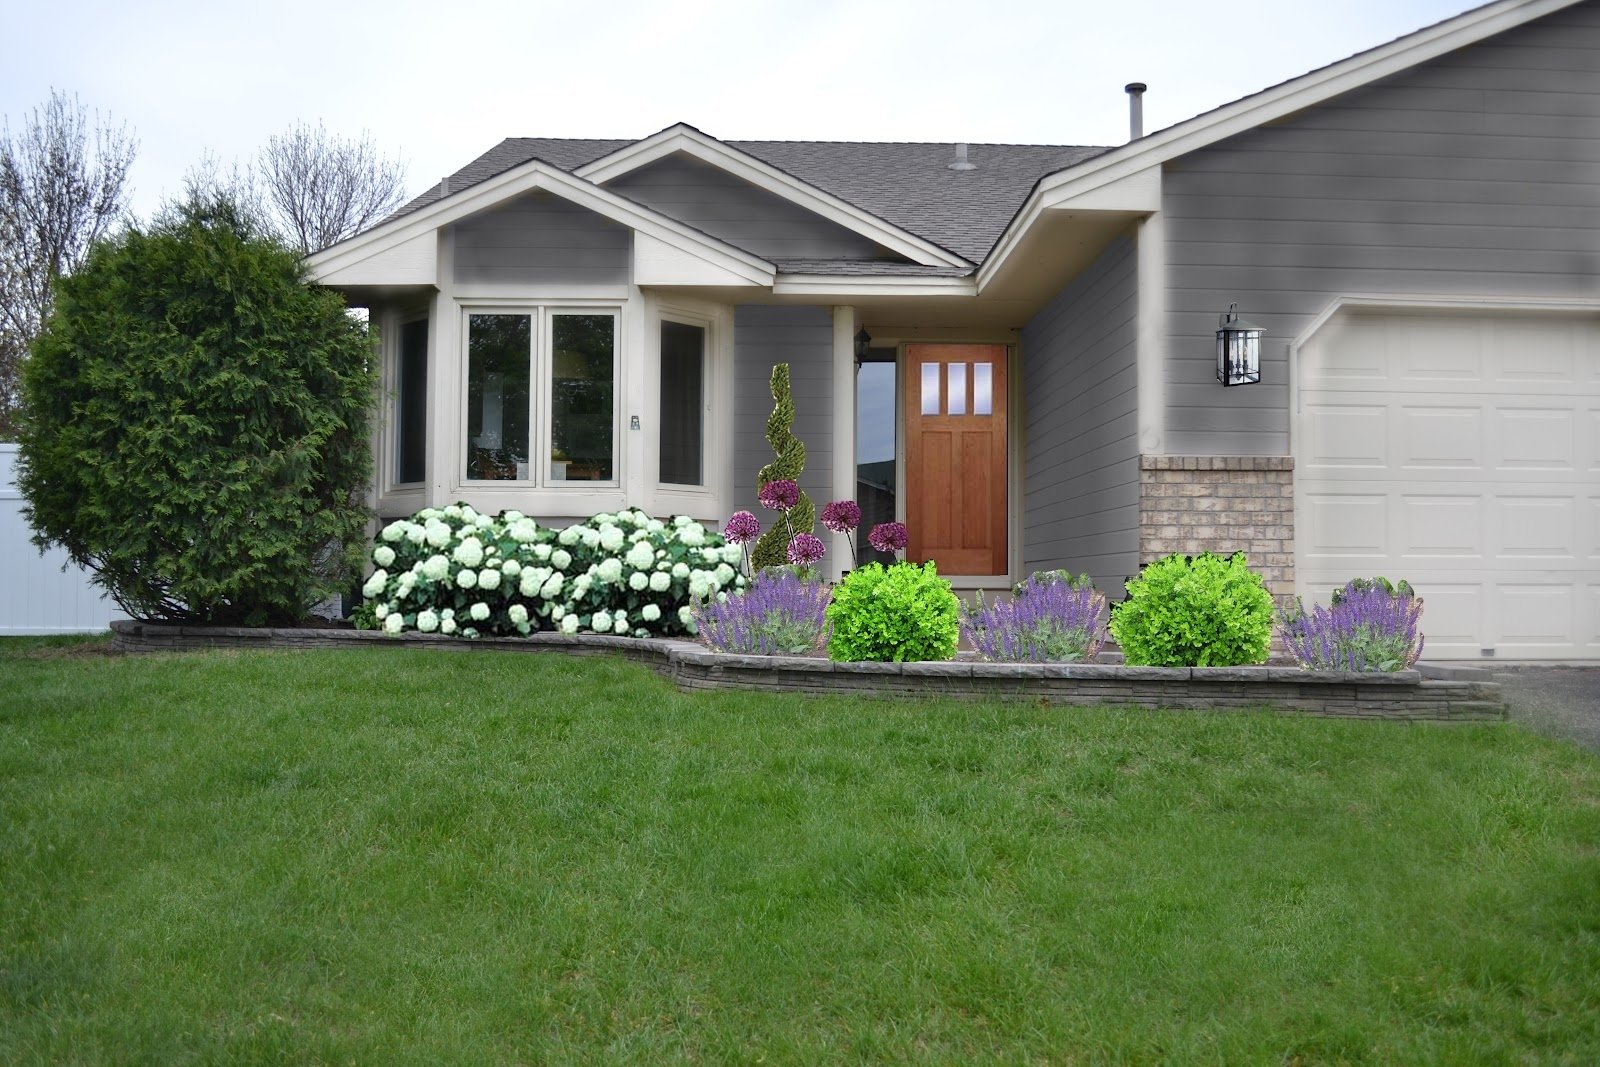 10 Stunning Landscaping Ideas Front Of House front yard front yard simple landscaping ideas for of house design 1 2020